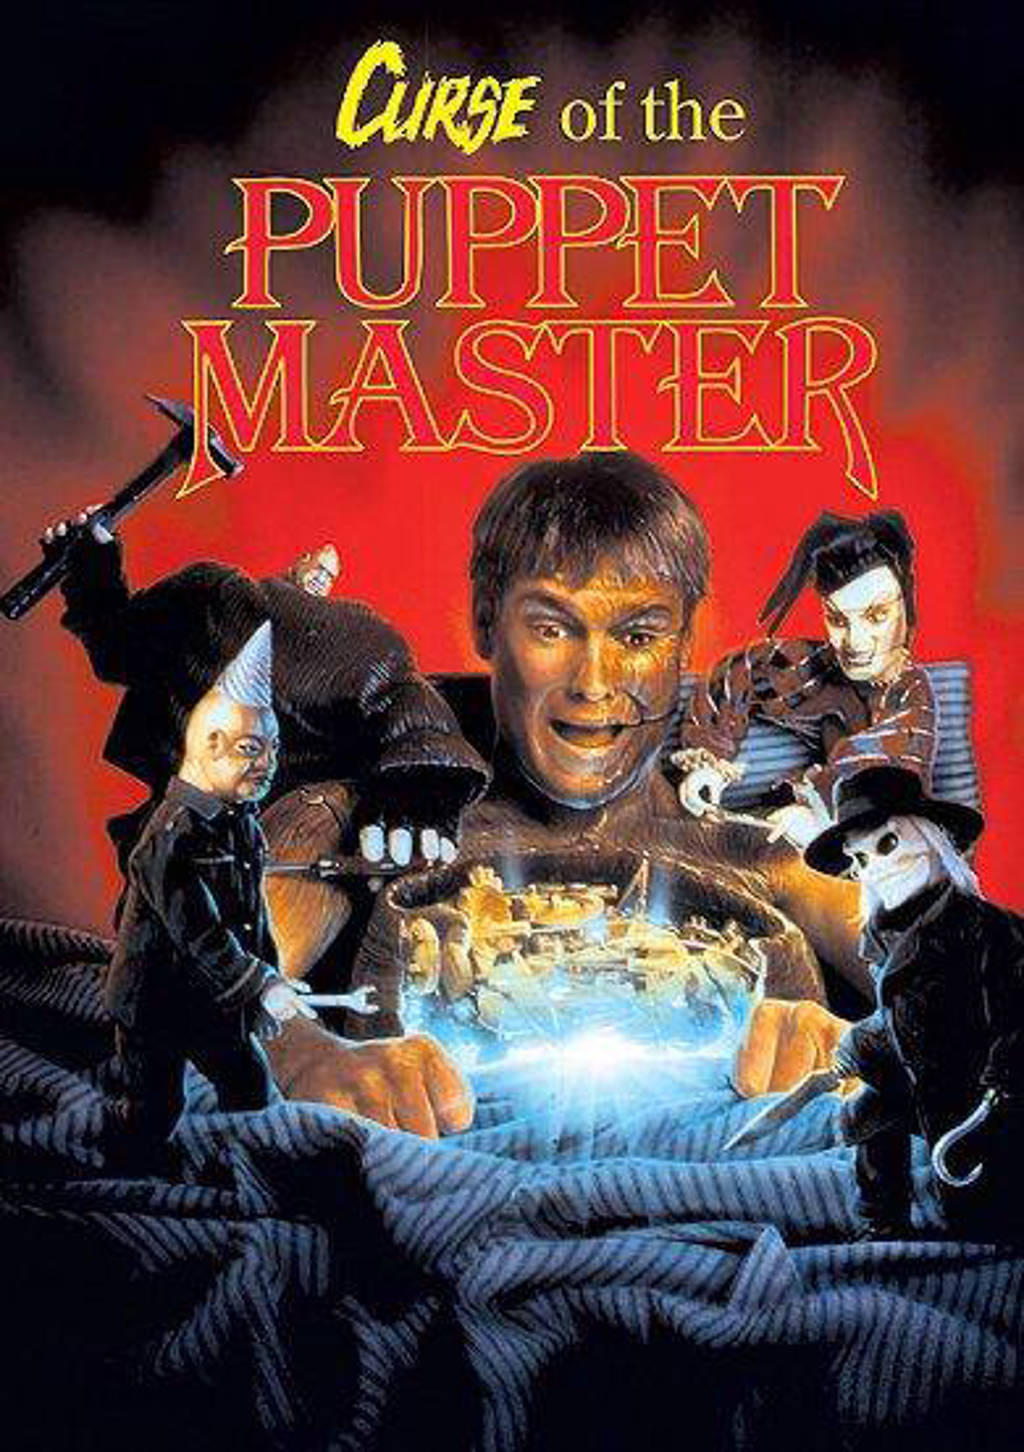 Curse of the puppetmaster (DVD)